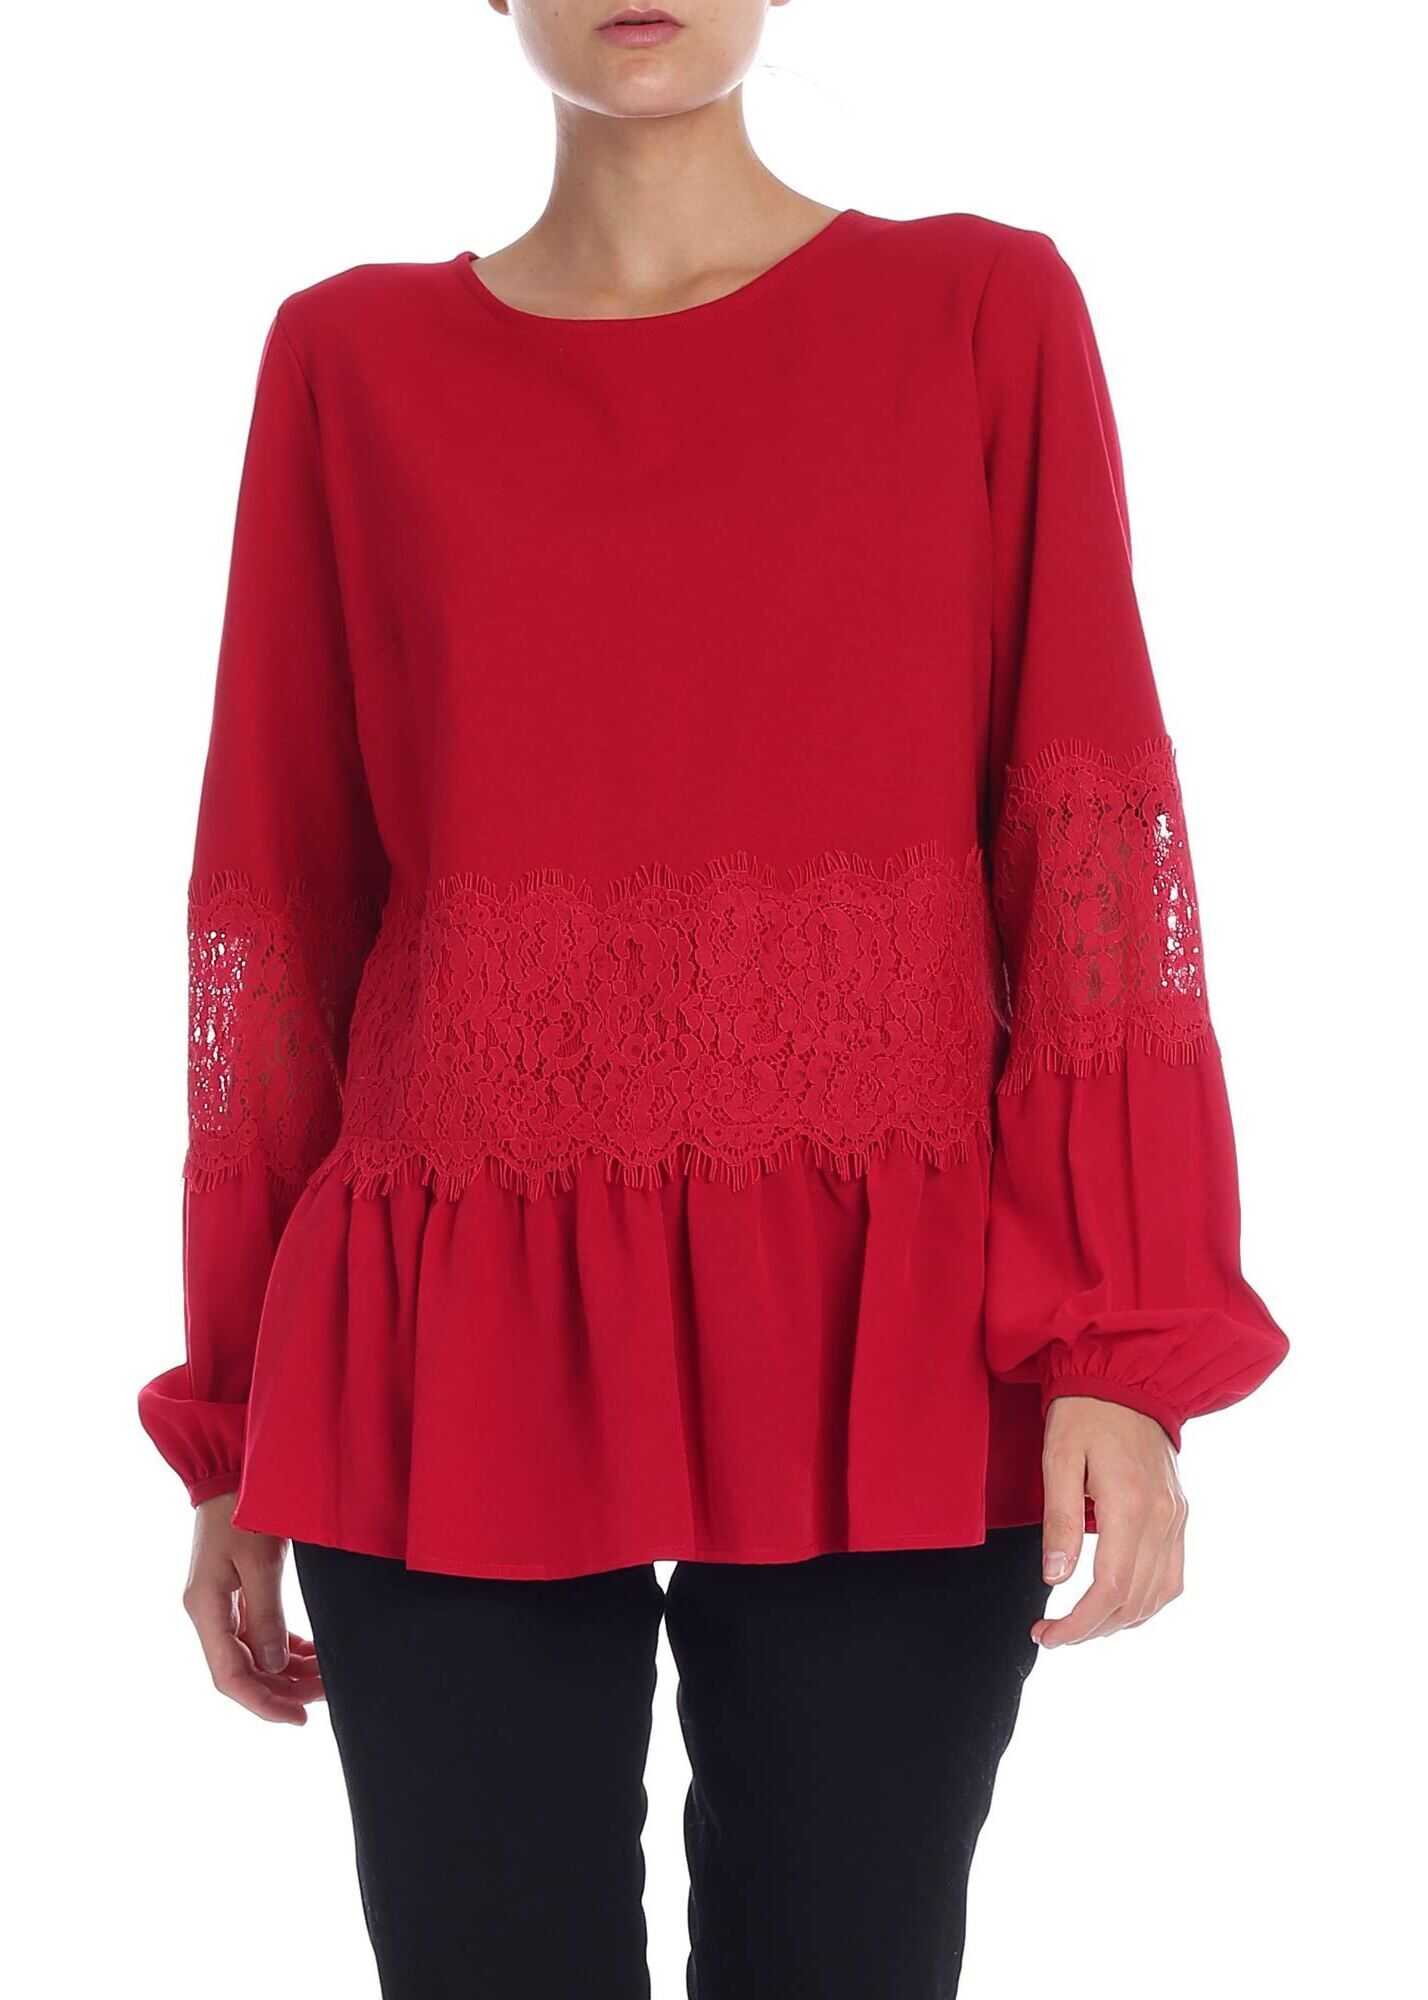 Red Blouse With Lace Details thumbnail